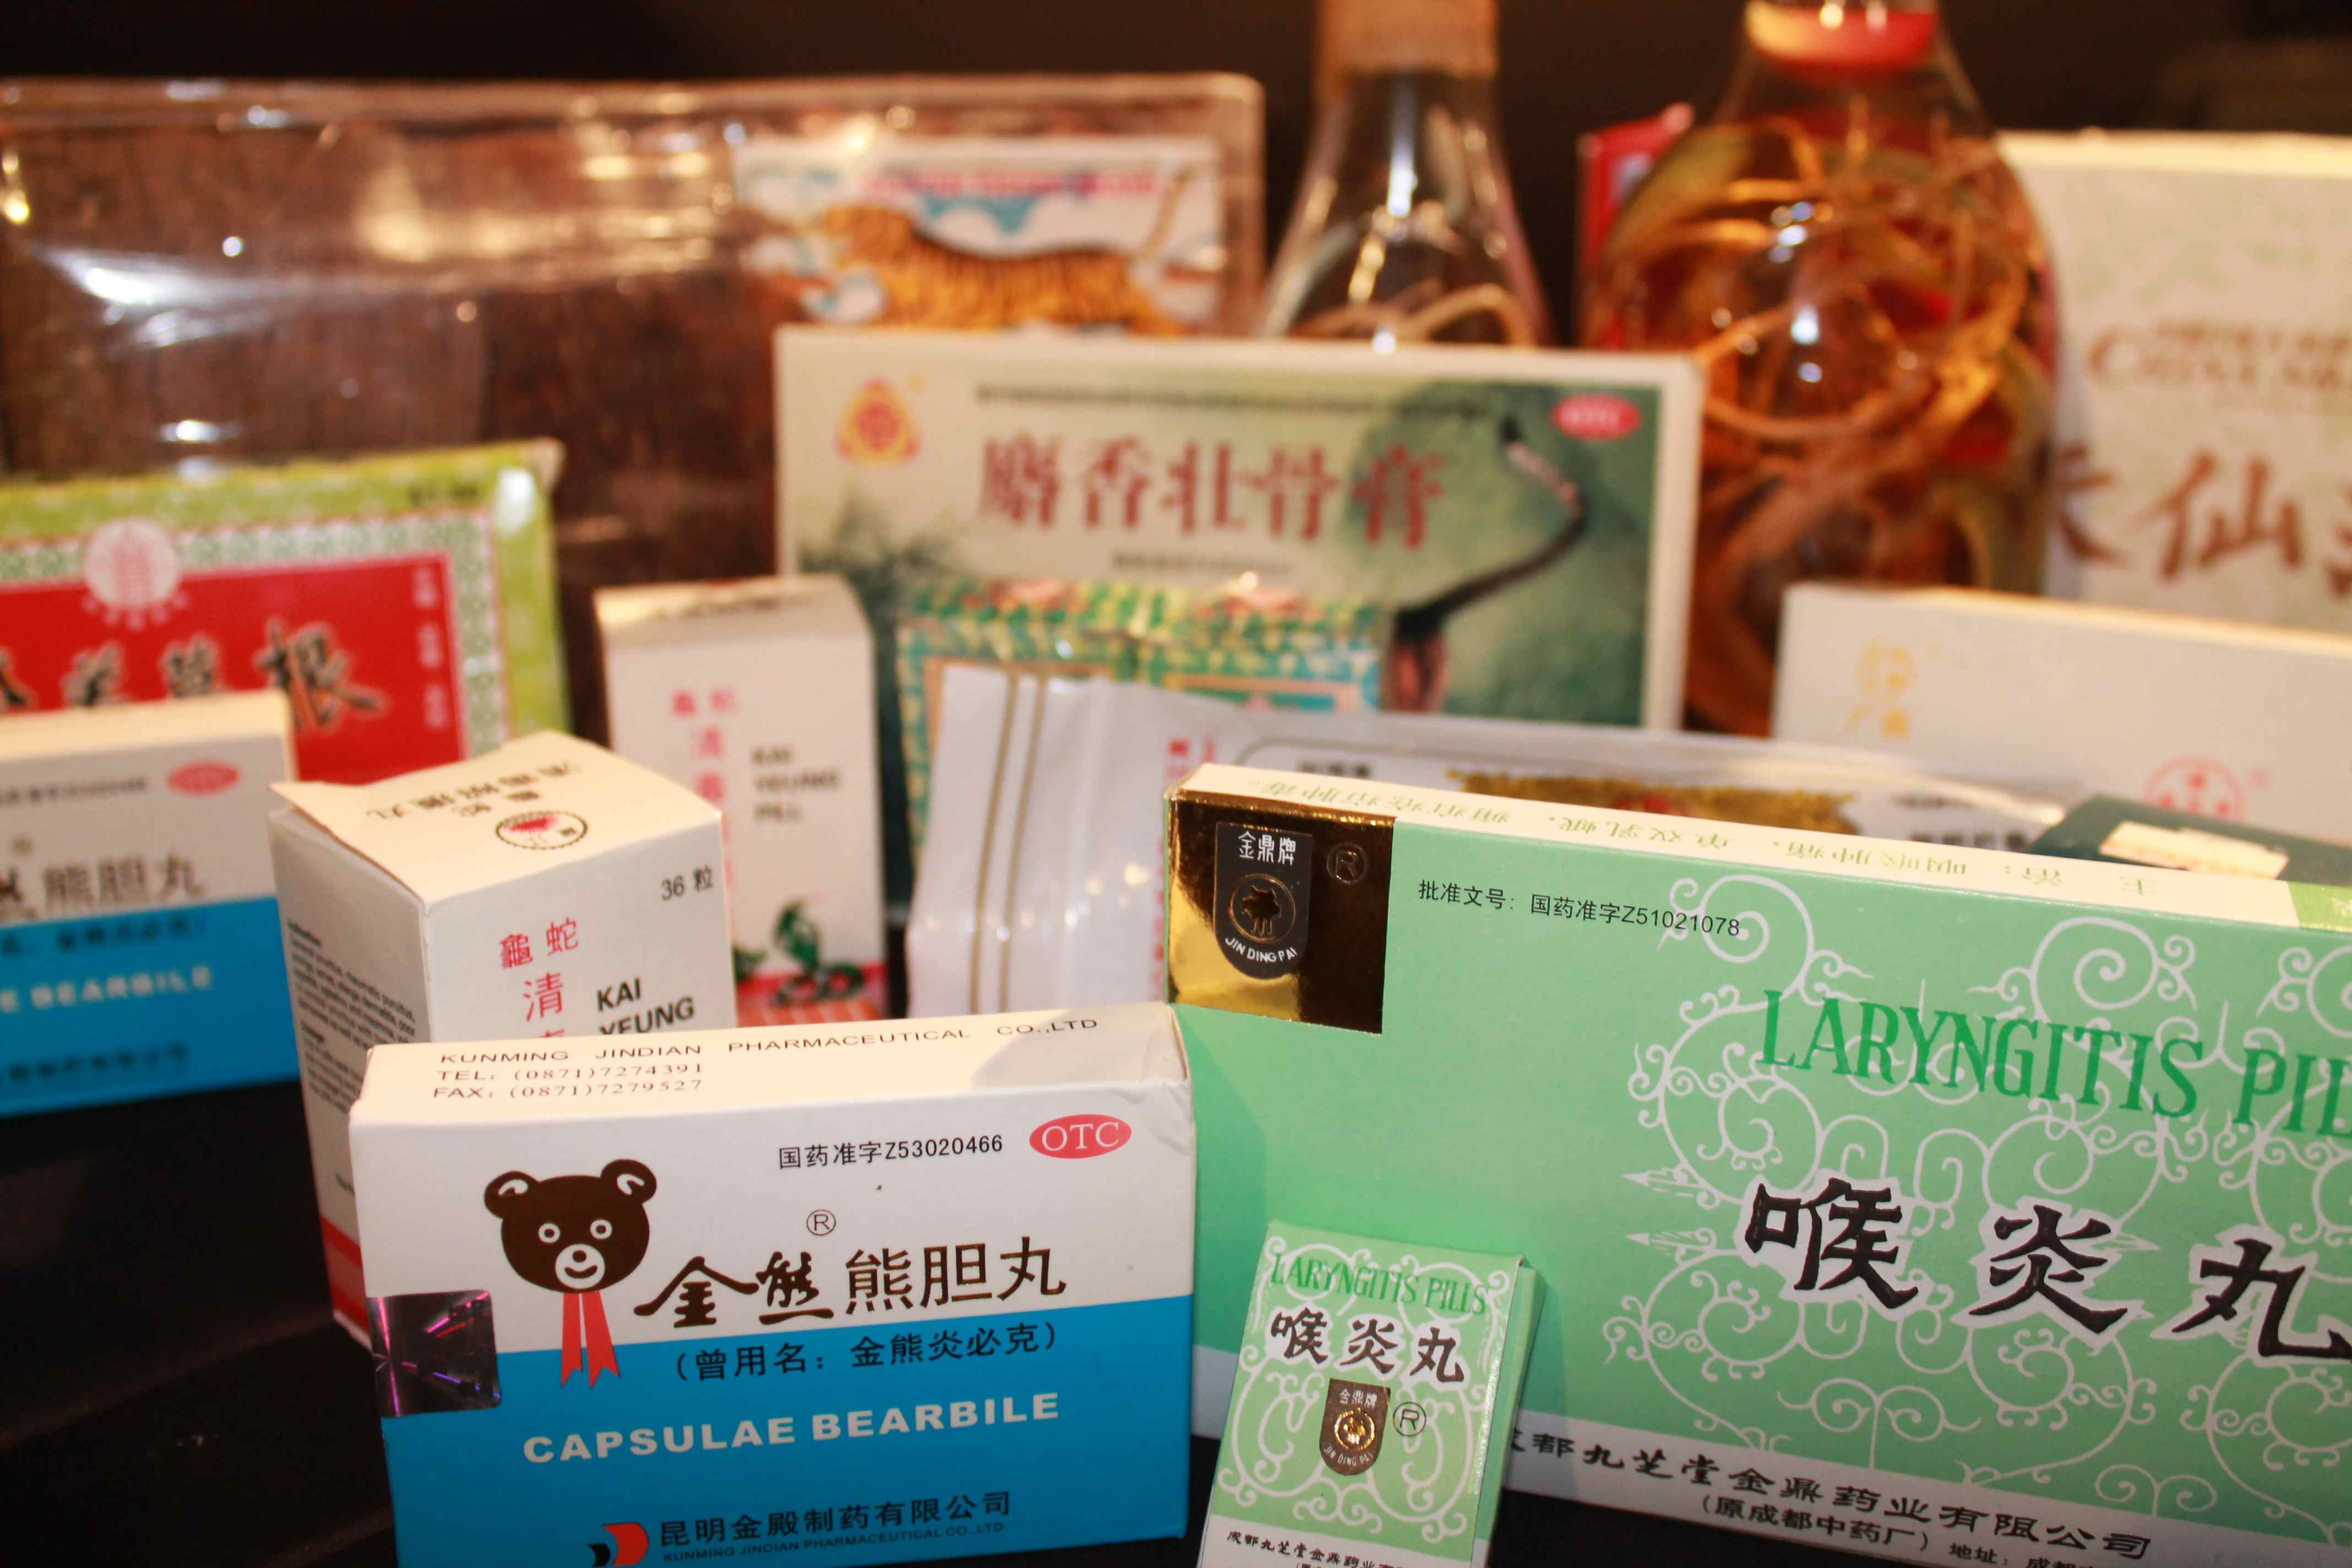 Are Traditional Chinese Medicines Safe And Legal